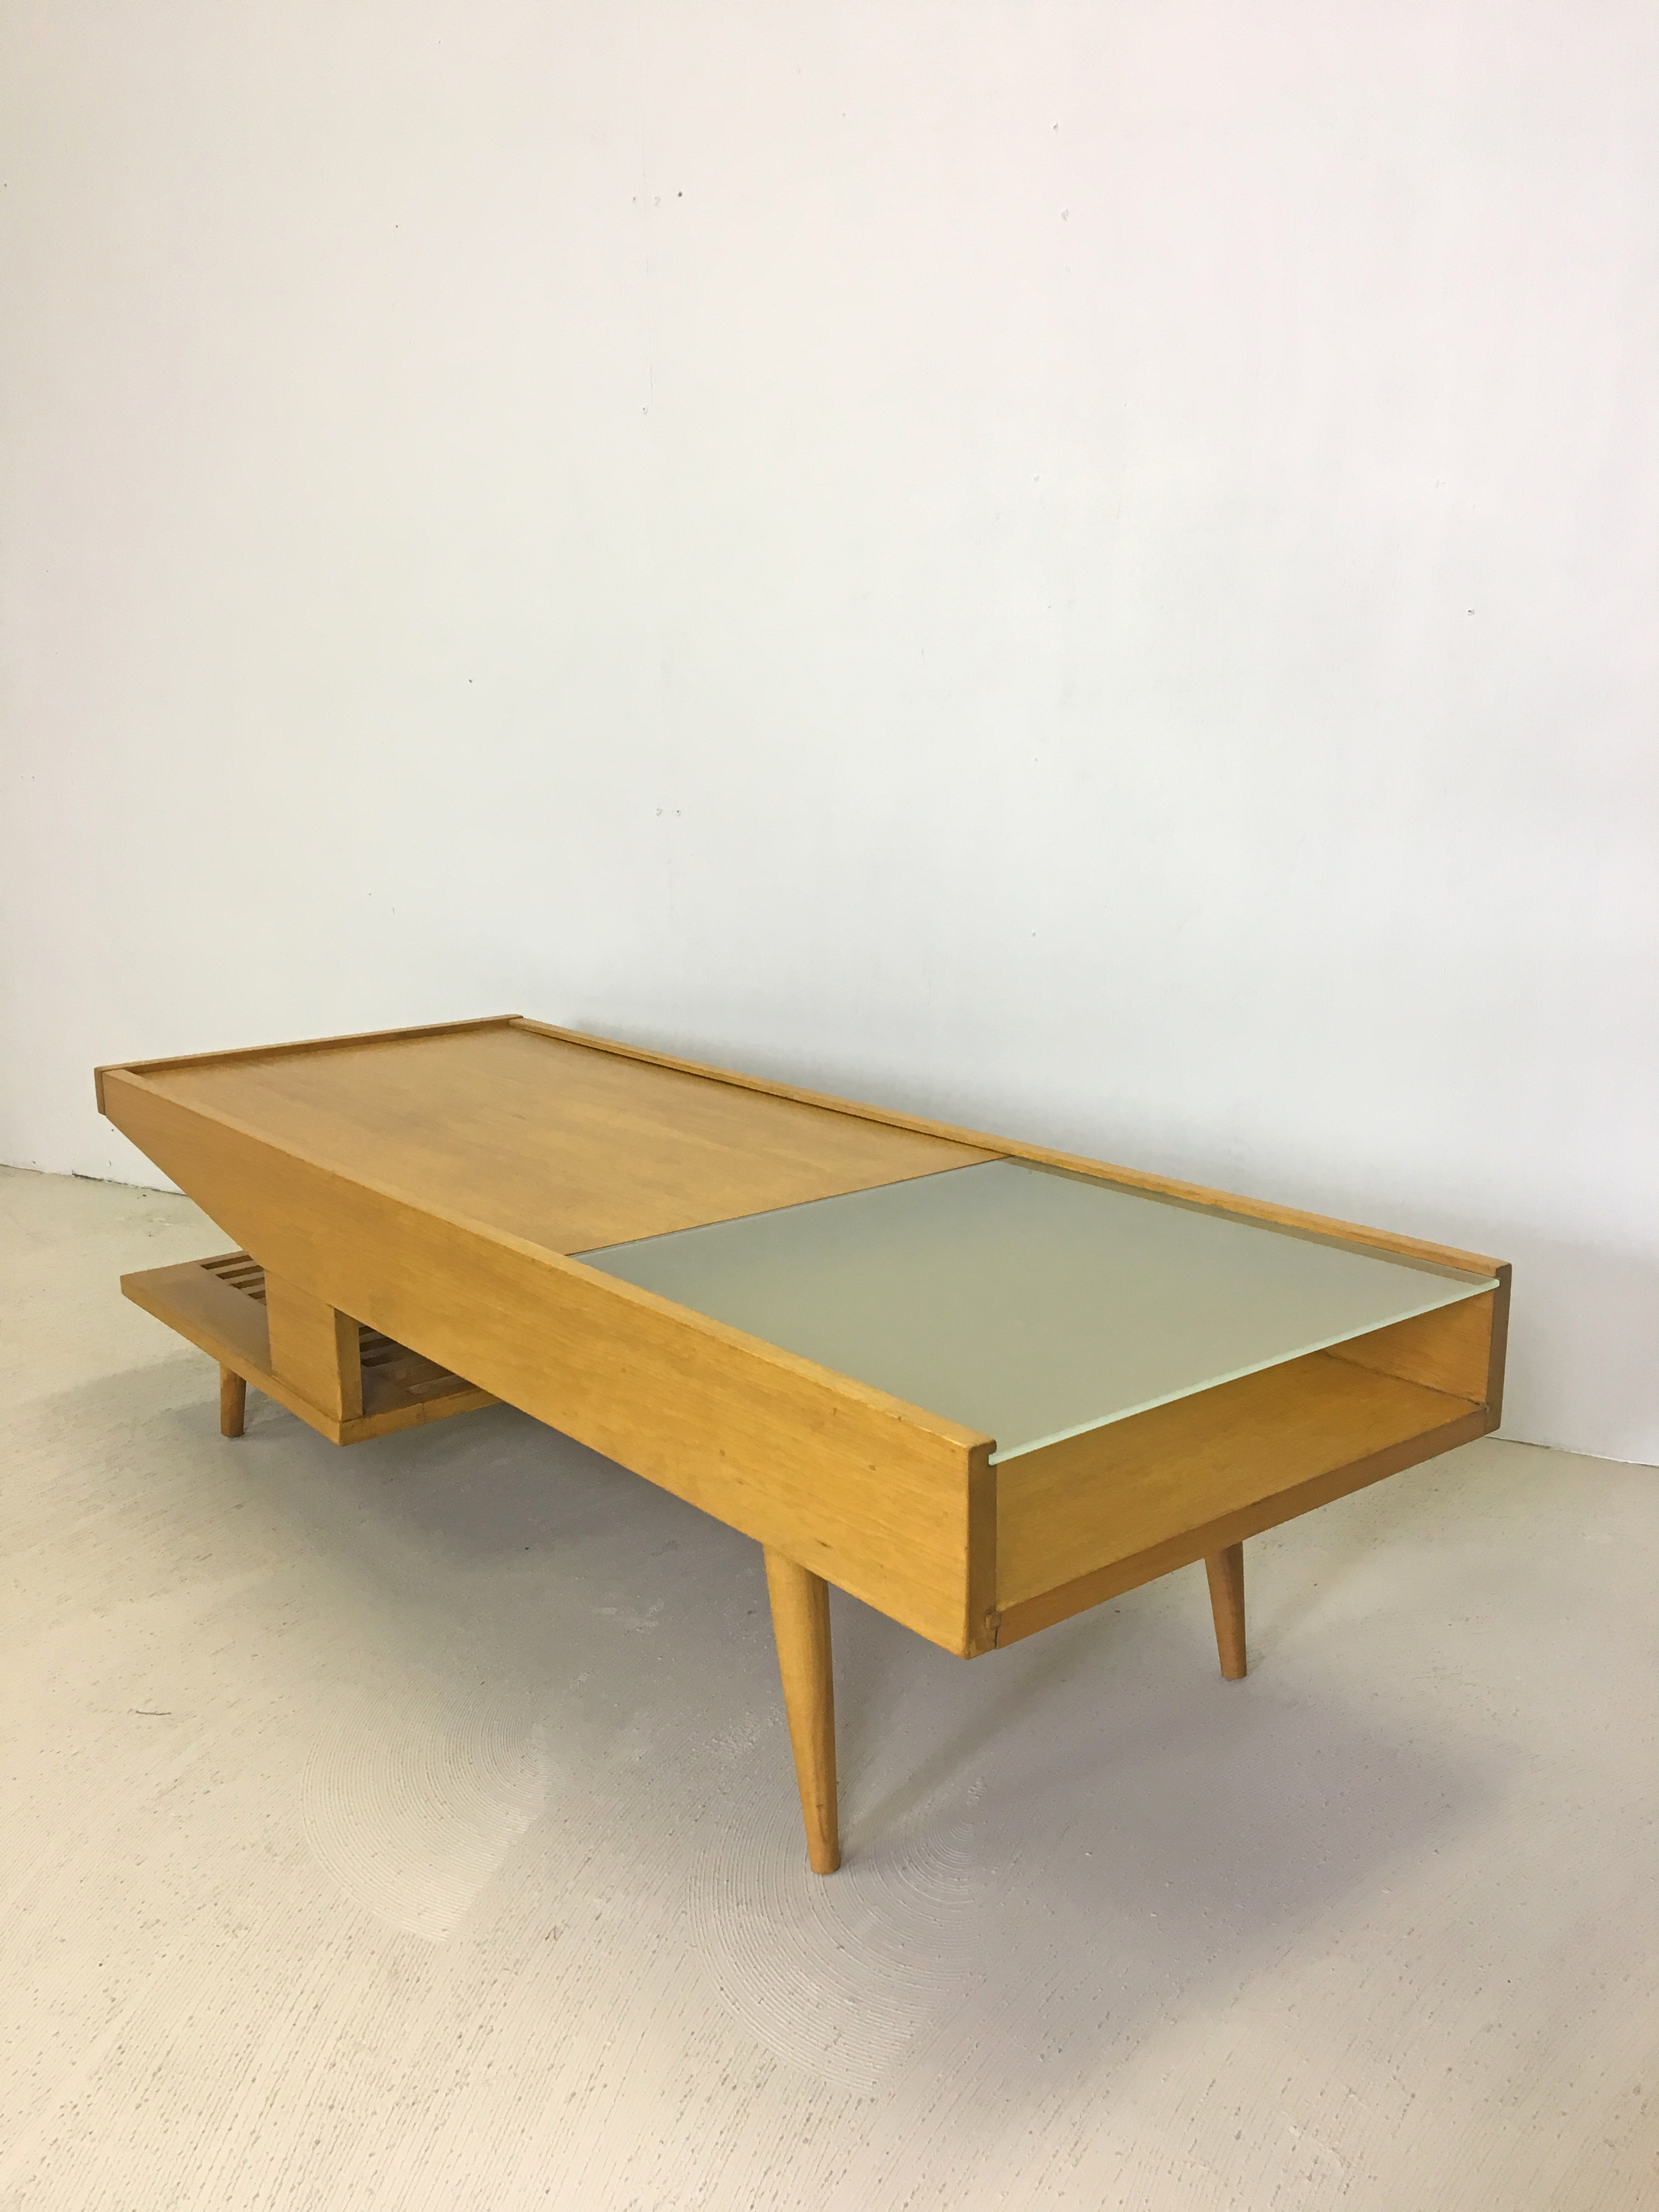 SALE - Brown Saltman Coffee Table by John Keal